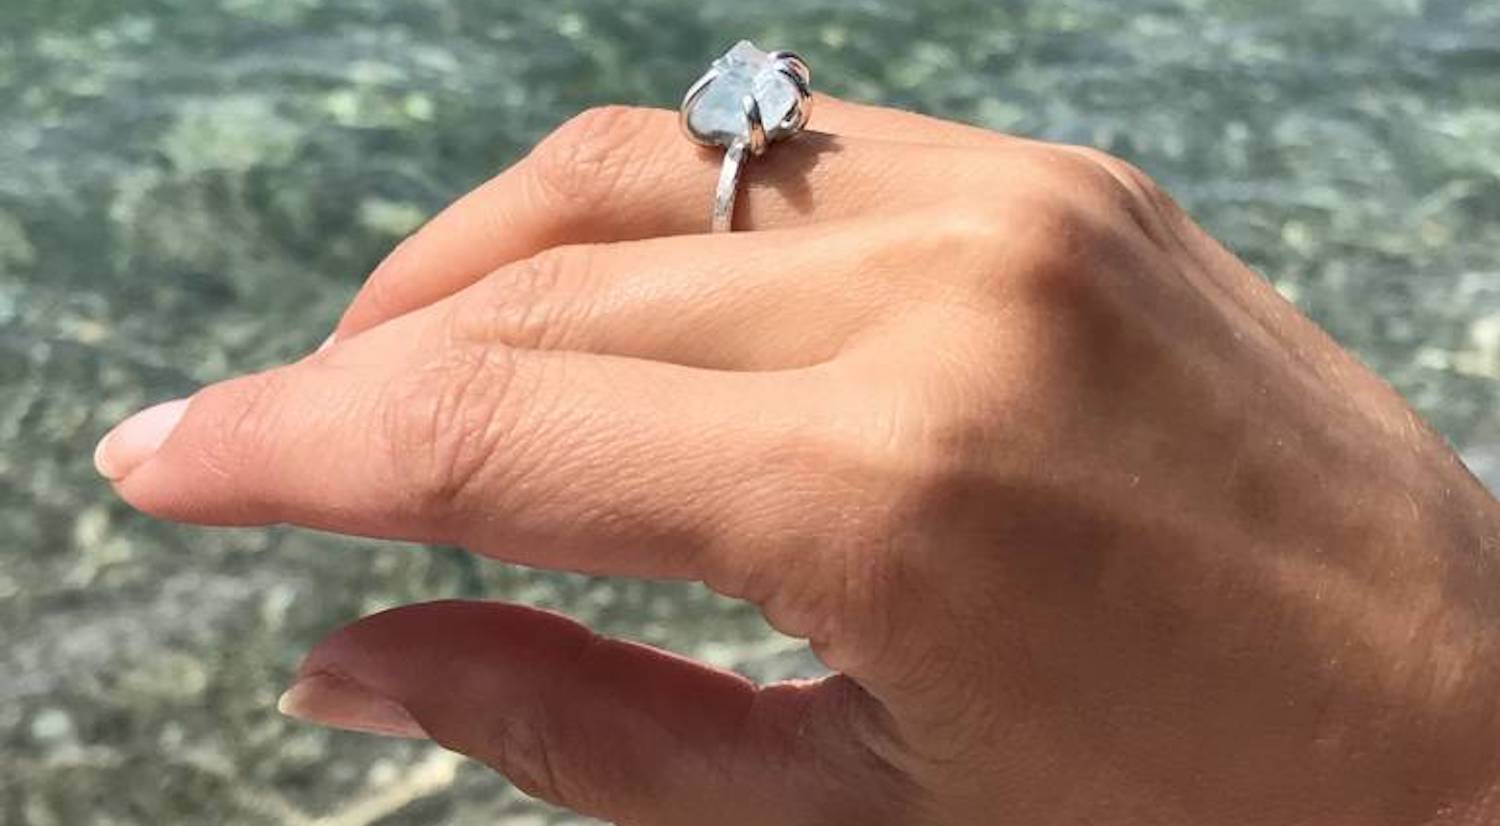 Northern Michigan Engagement Rings